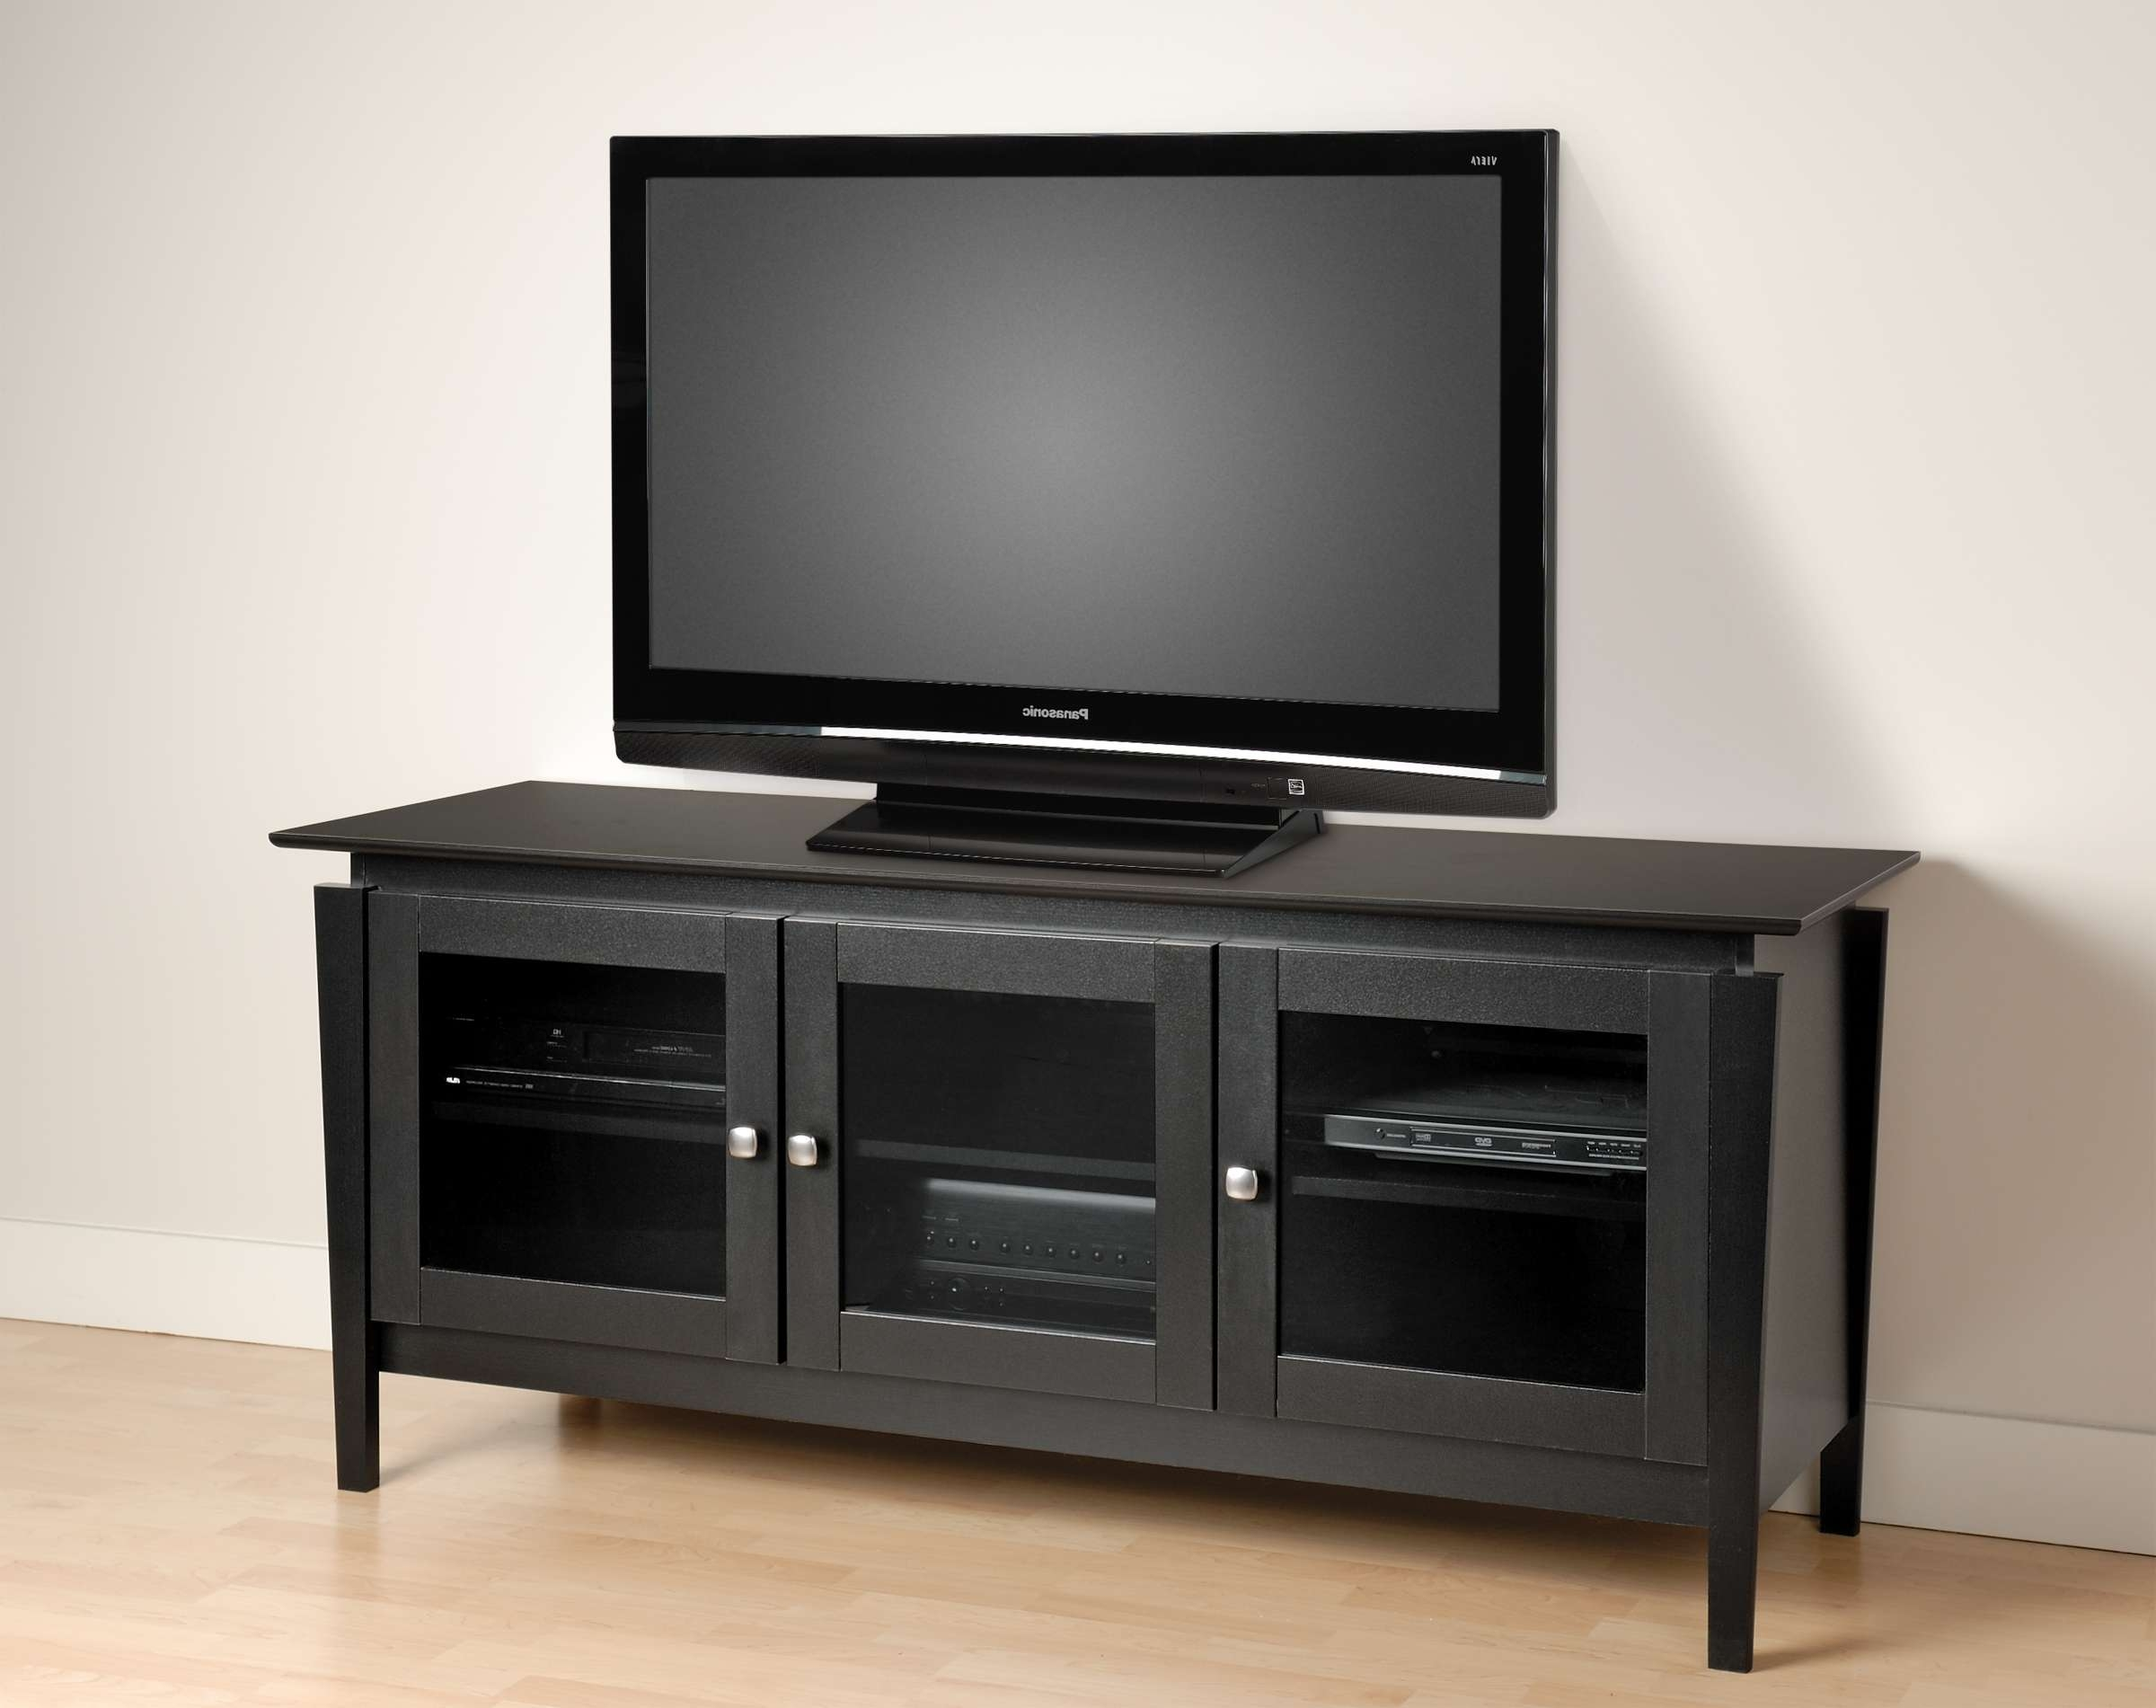 Modern Black Stained Oak Wood Media Cabinet With Glass Doors Of For Wooden Tv Stands With Glass Doors (View 7 of 15)